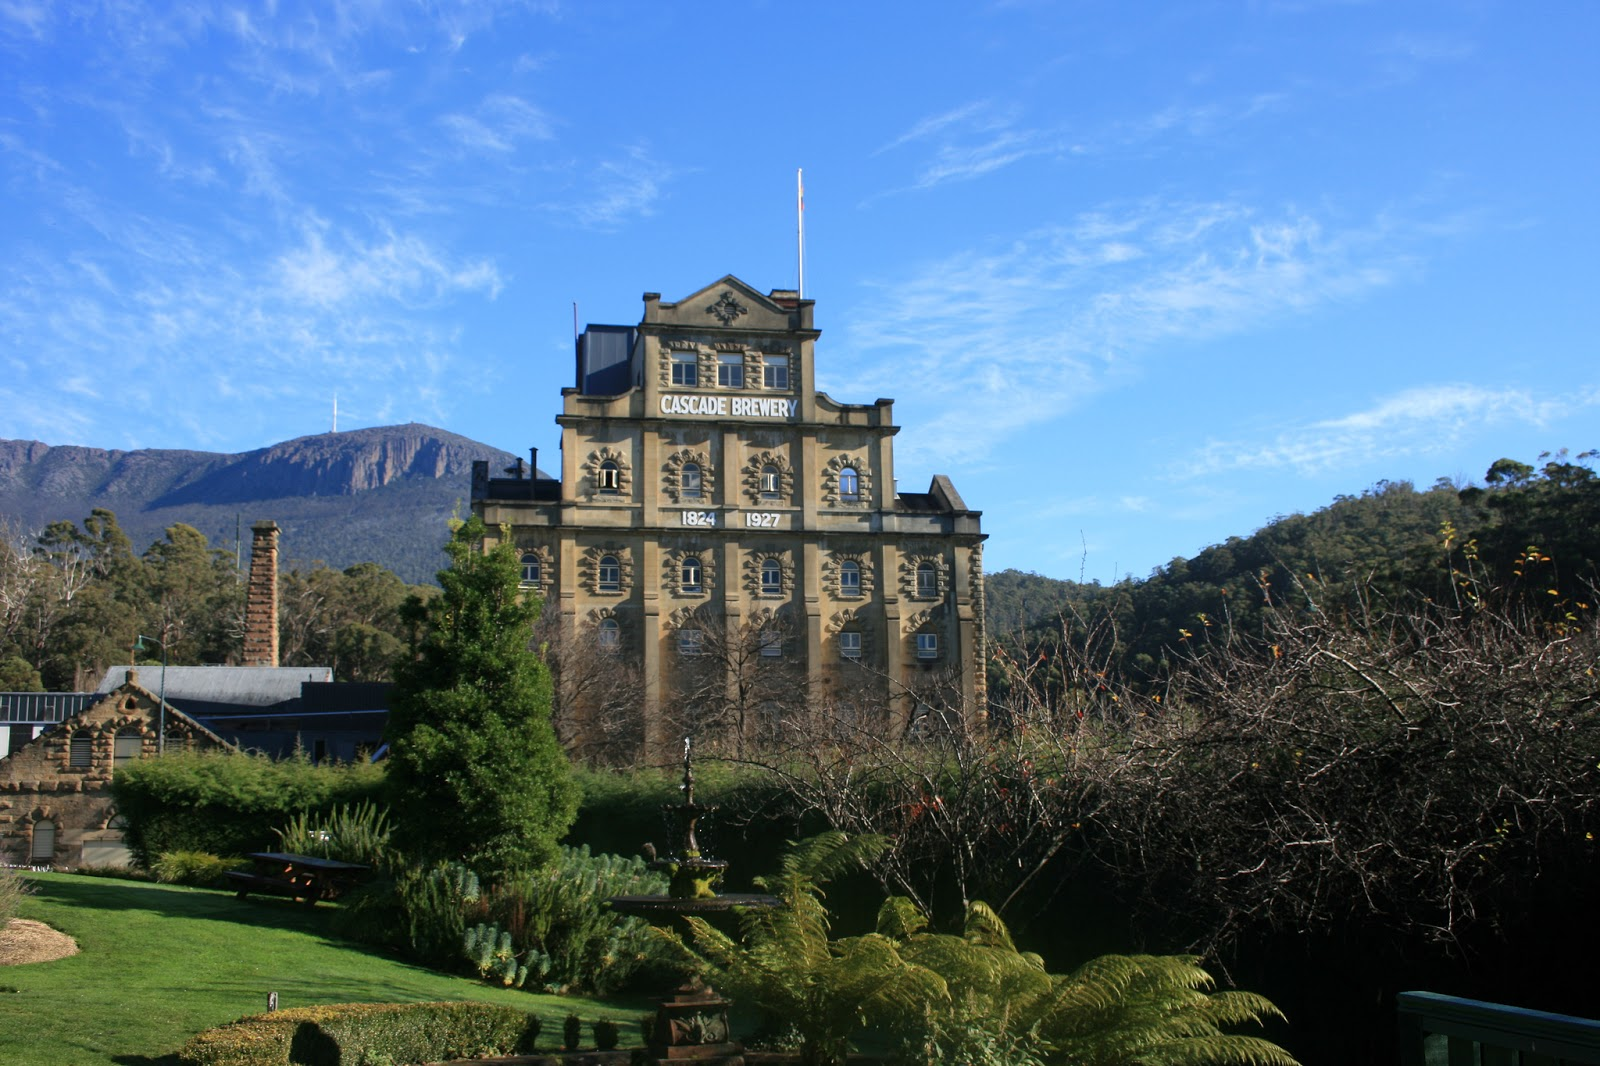 Launceston Australia  City new picture : voyage to Tasmania, Australia, Pacific Hobart, Launceston ...